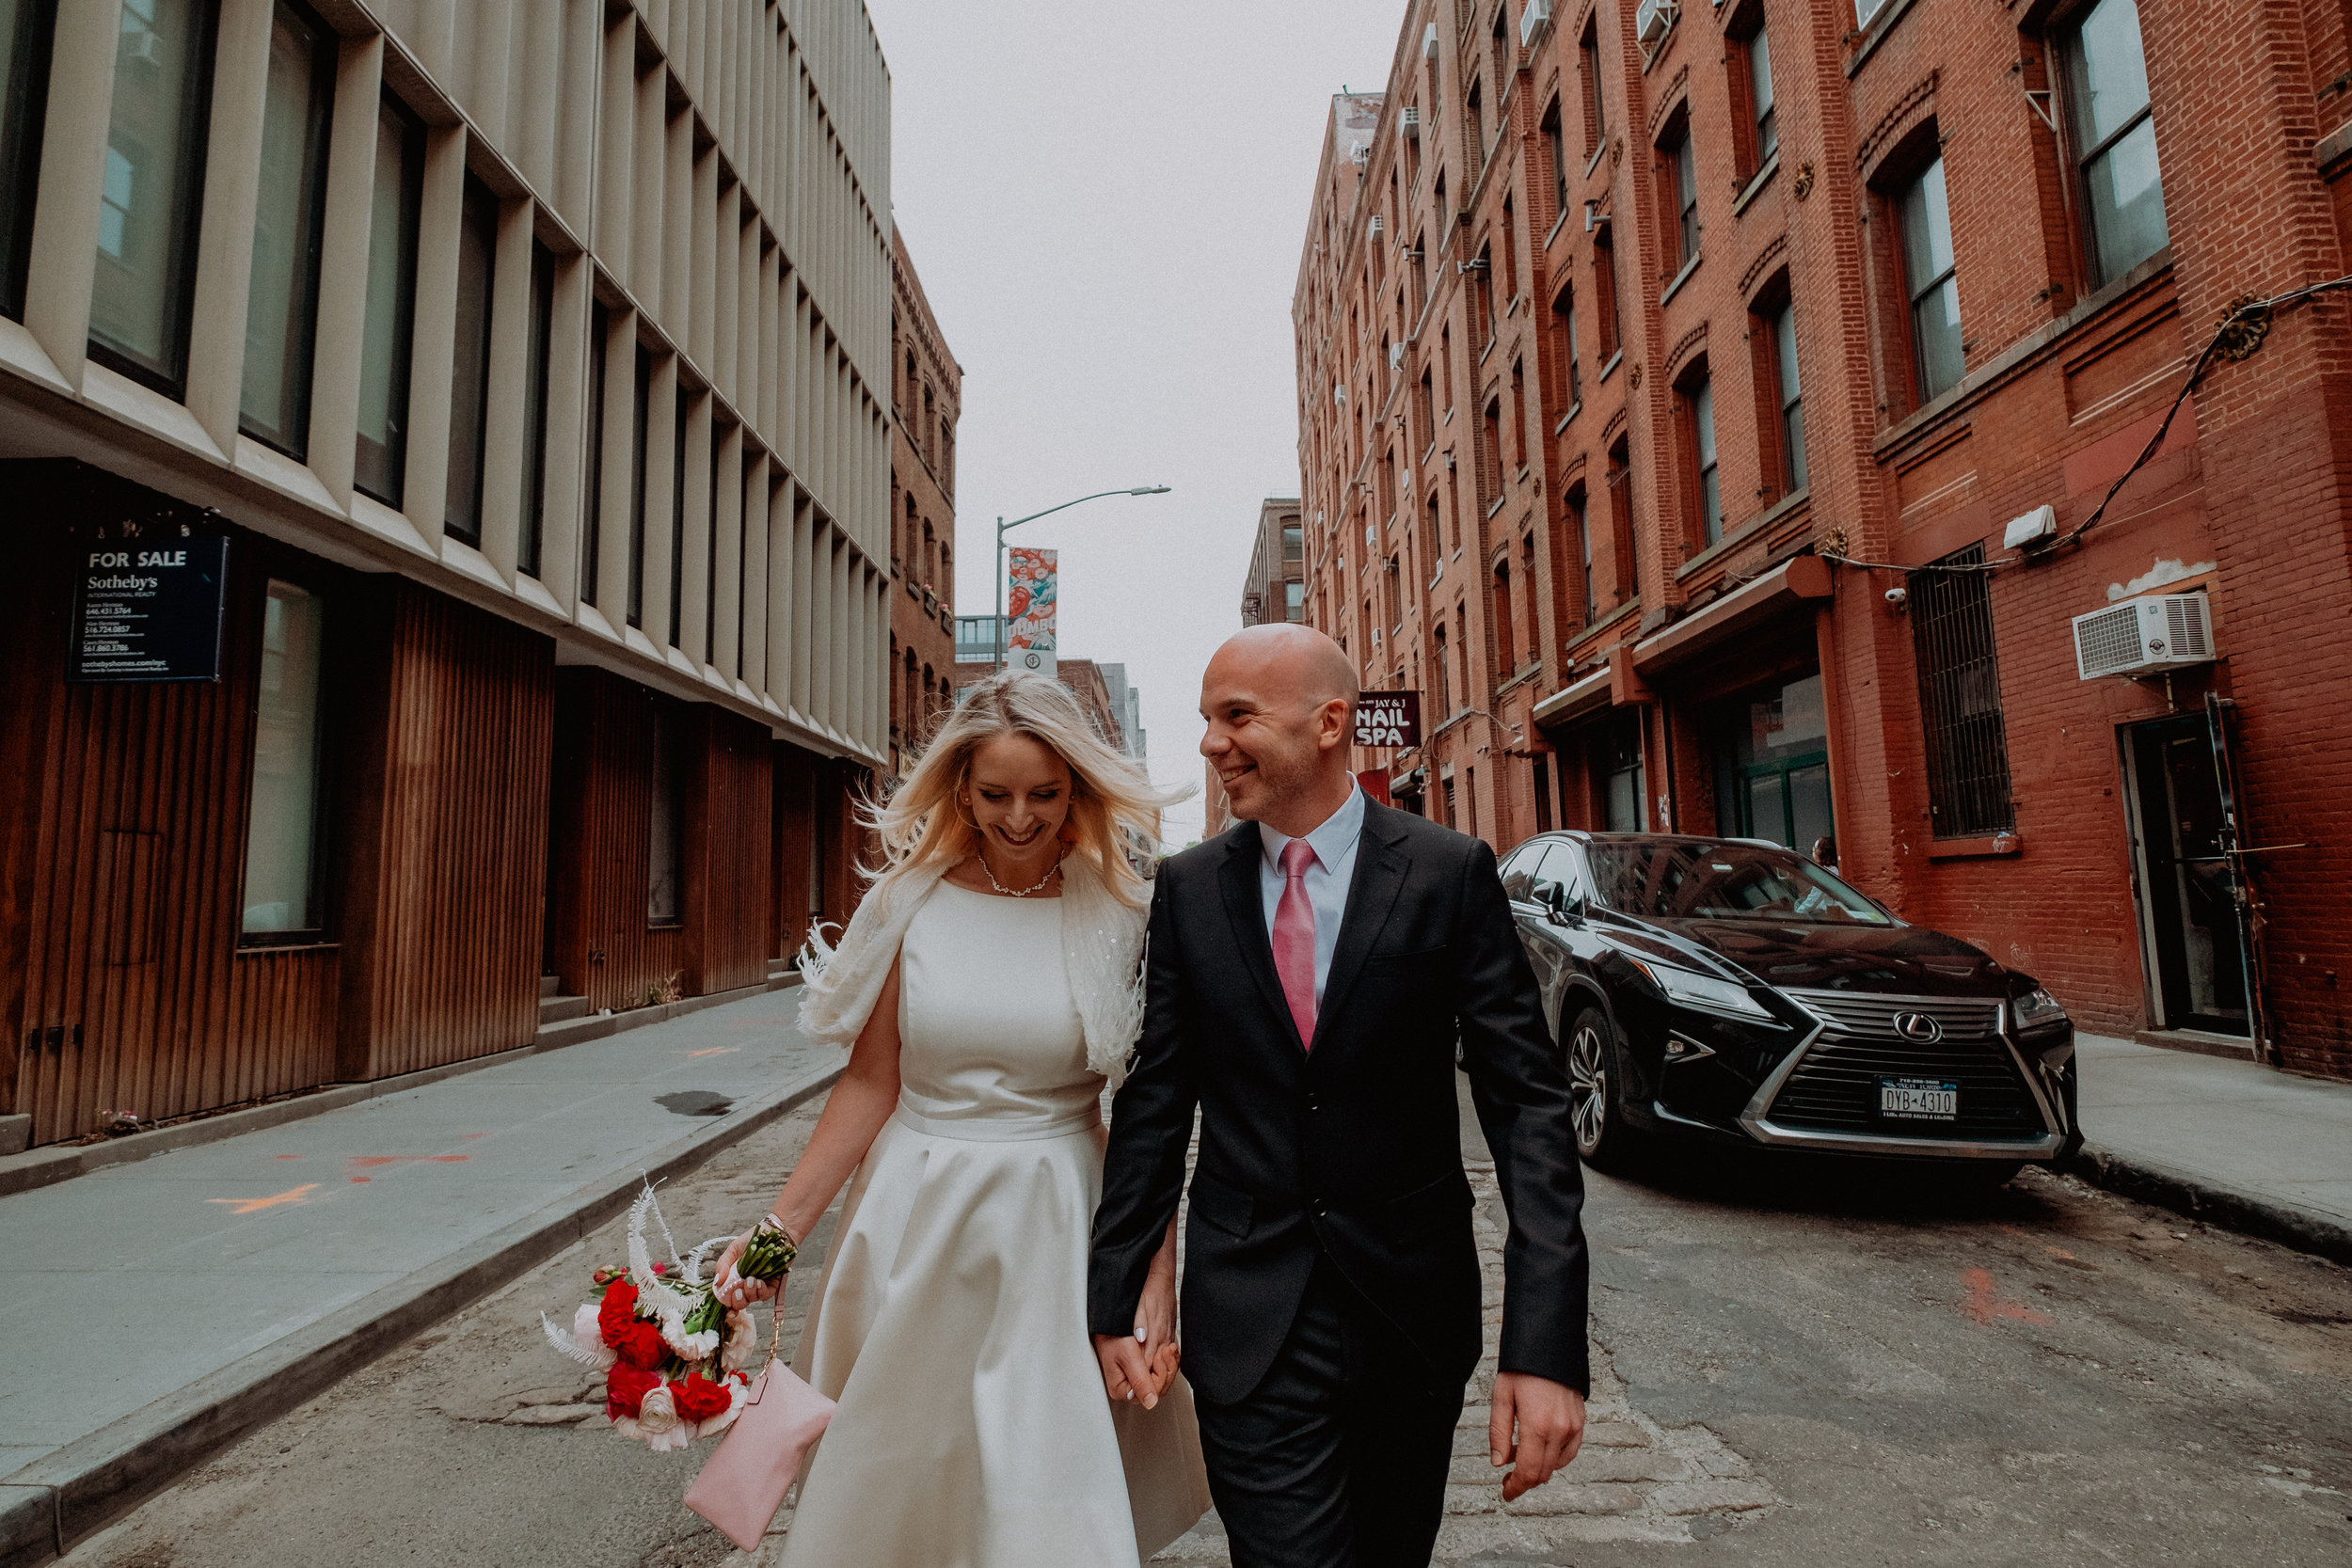 Brooklyn_City_Hall_Elopement_Photographer_Chellise_Michael_Photography232.JPG